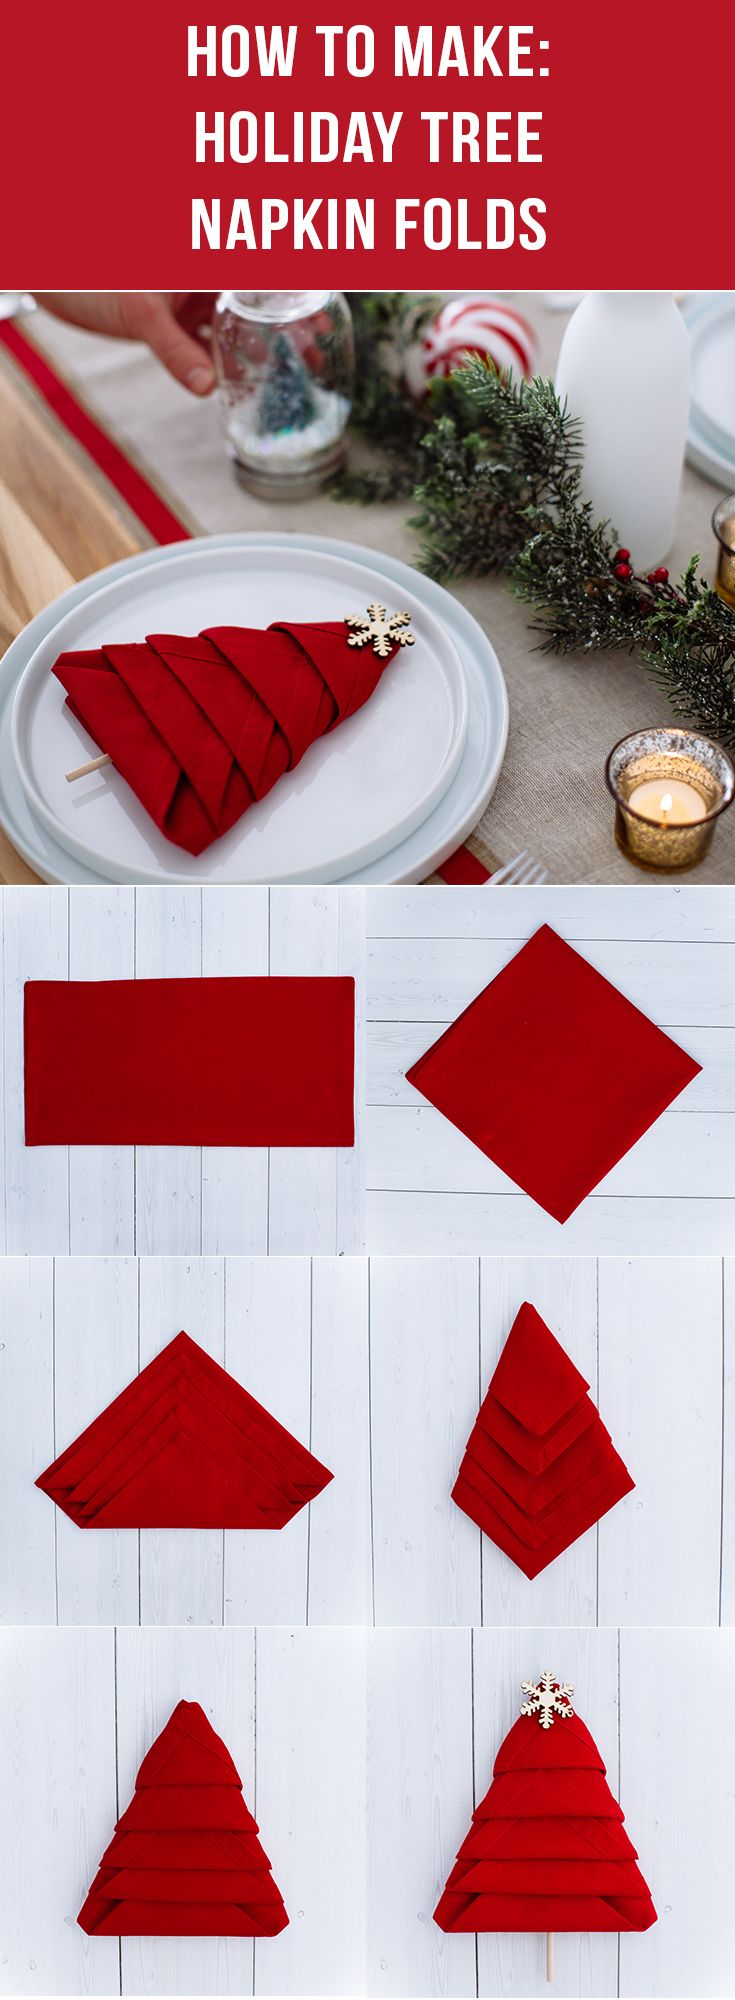 How To Make Table Napkin Designs find this pin and more on how to fold a napkin Add Personality And Style To Any Holiday Table During The Festive Season With This Simple And